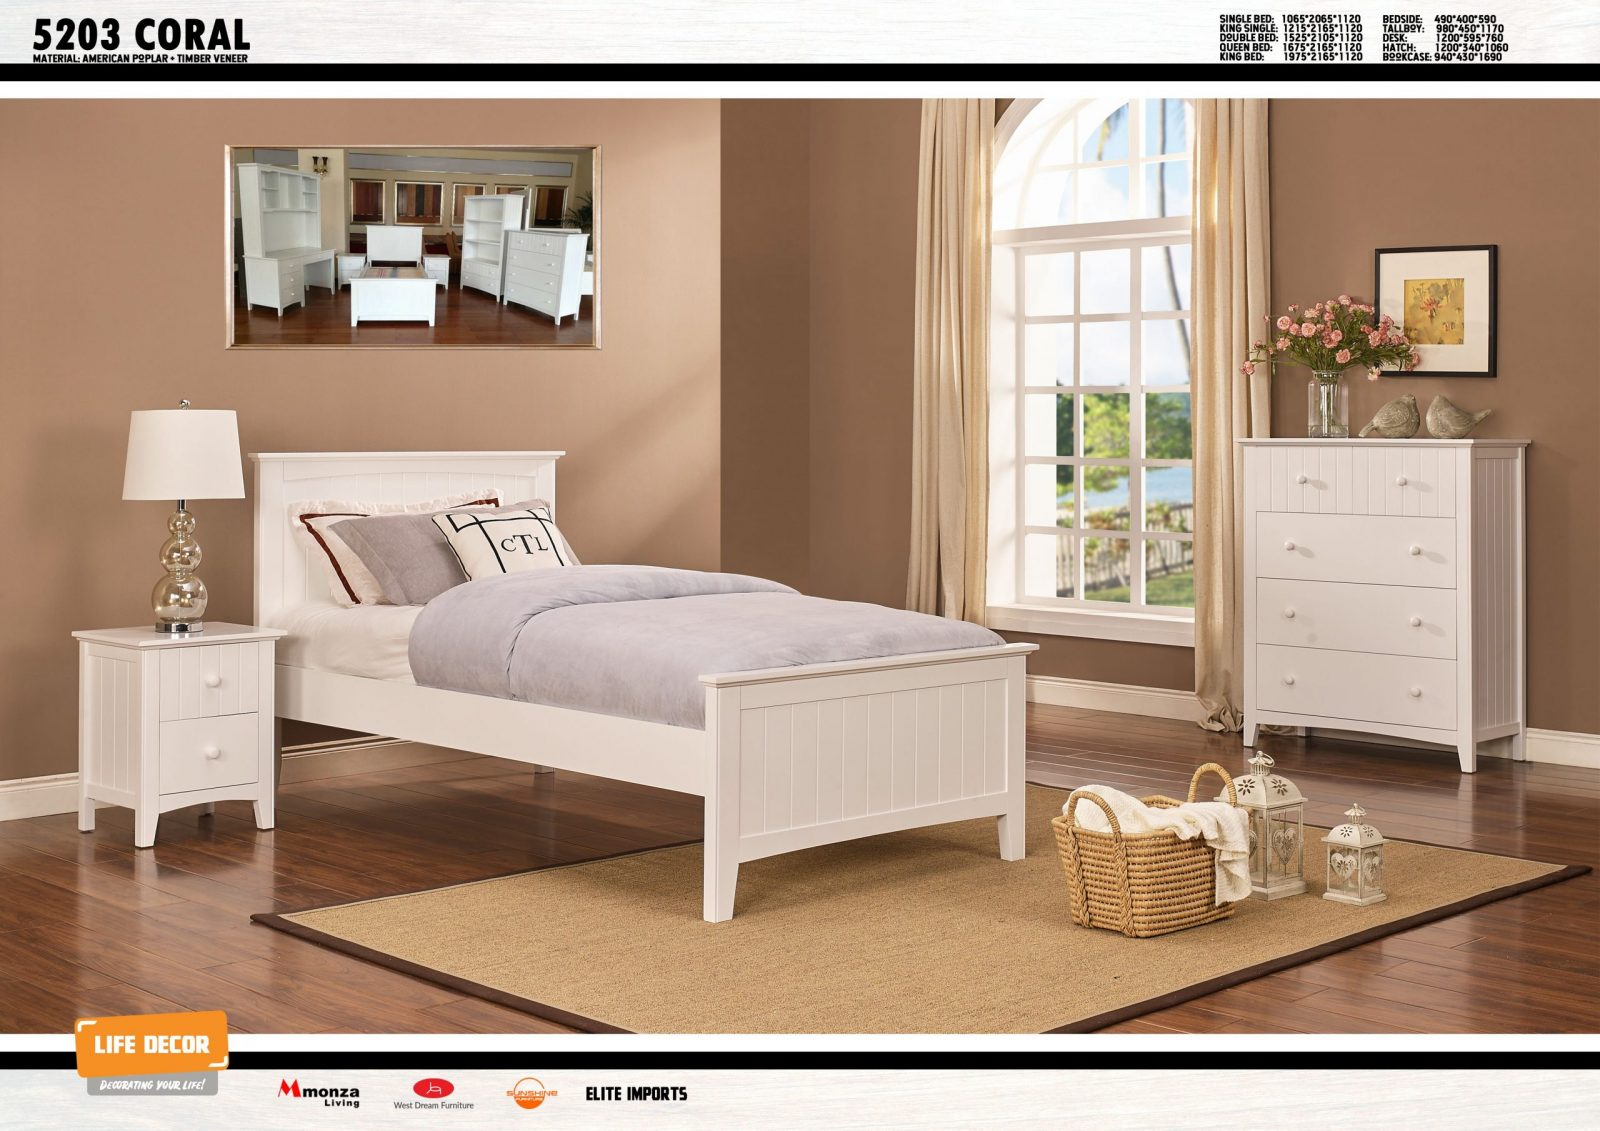 Coral Timber Bed Frame